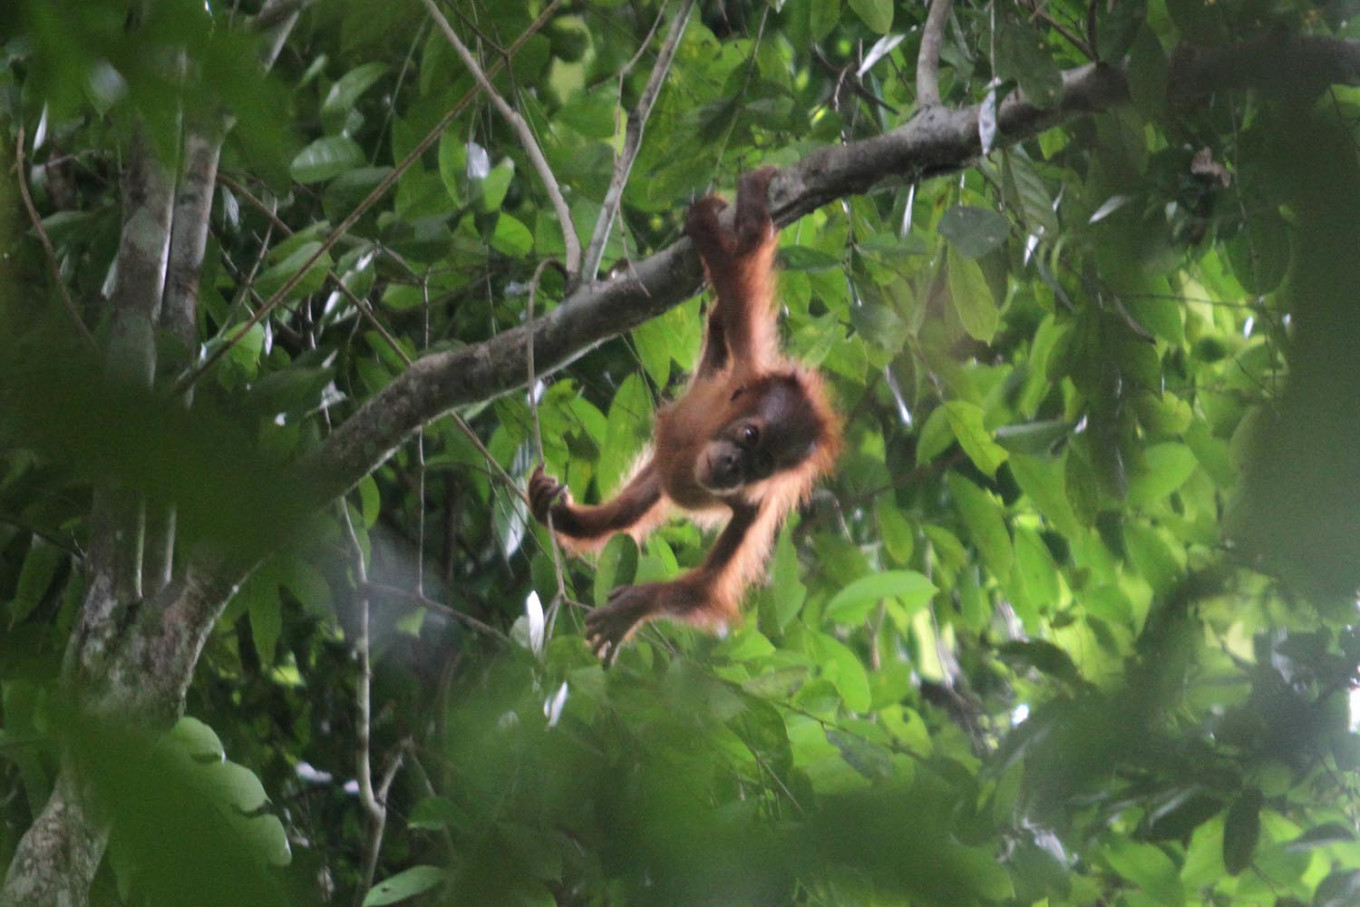 Sumatran orangutan released into wild after testing negative for COVID-19